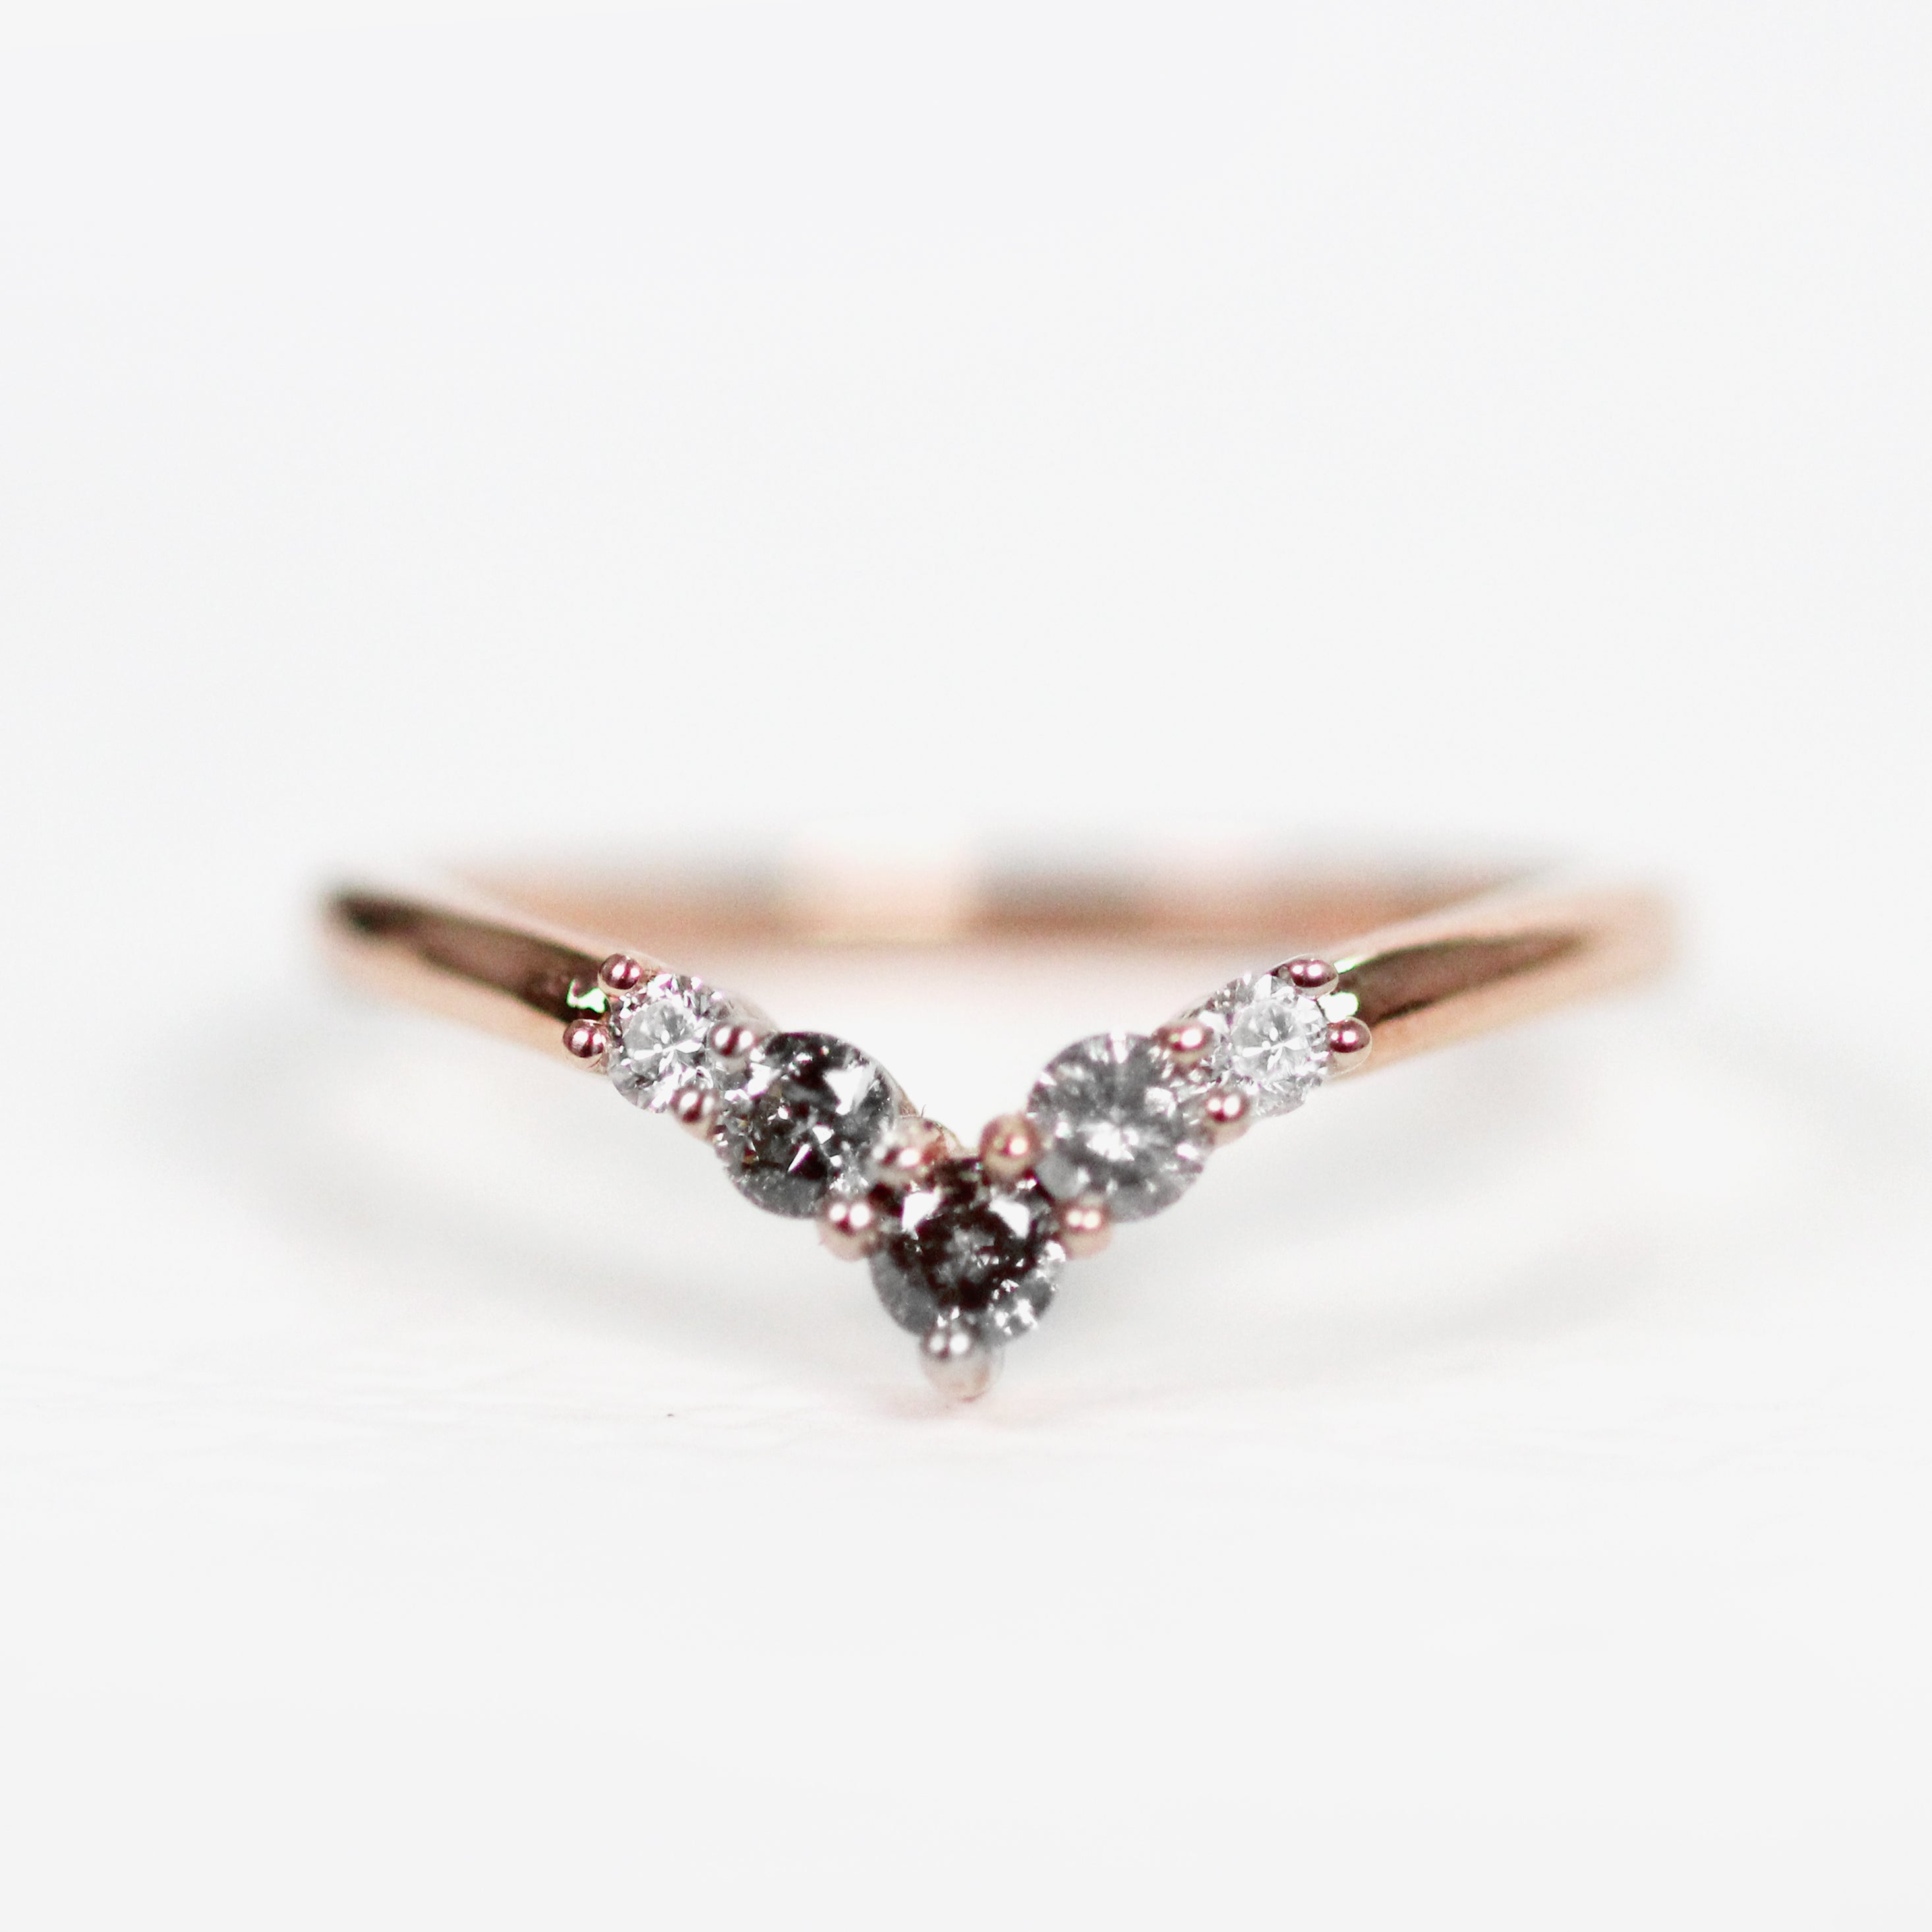 Rhiannon gray diamond band - Contour Point V Shape Diamond Band - Gold of choice - Celestial Diamonds ® by Midwinter Co.